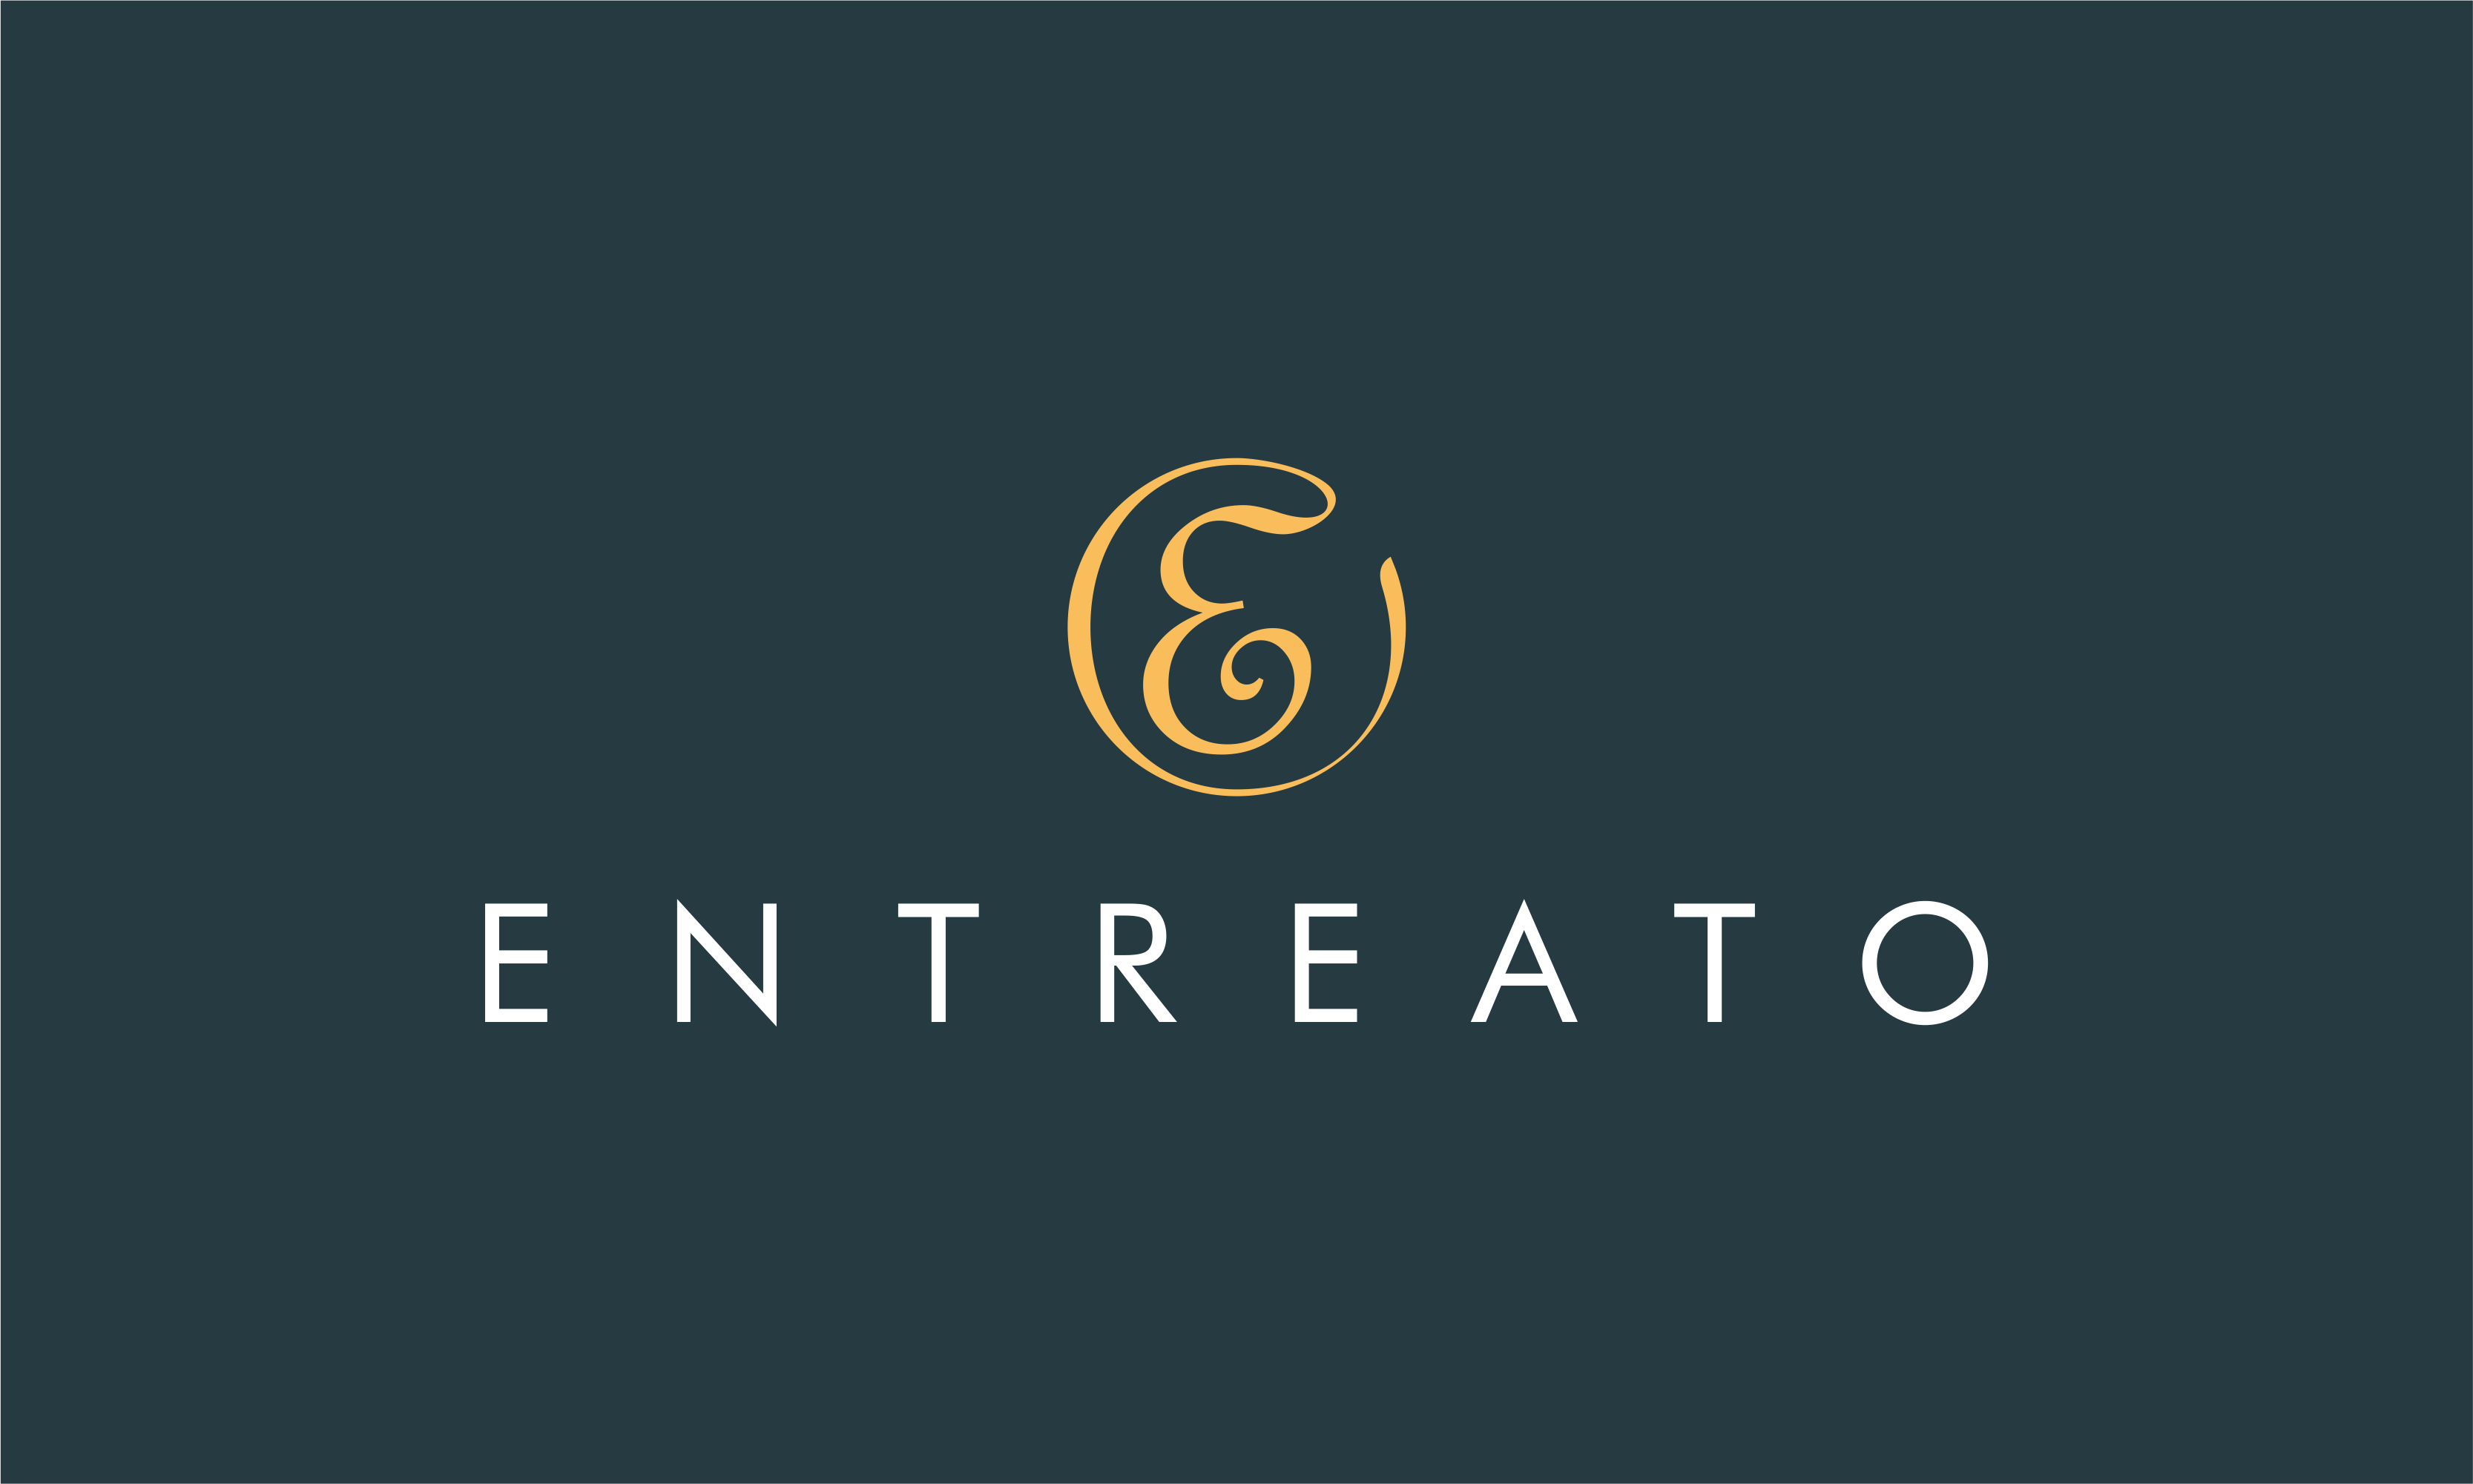 Entreato - Food and drink brand name for sale